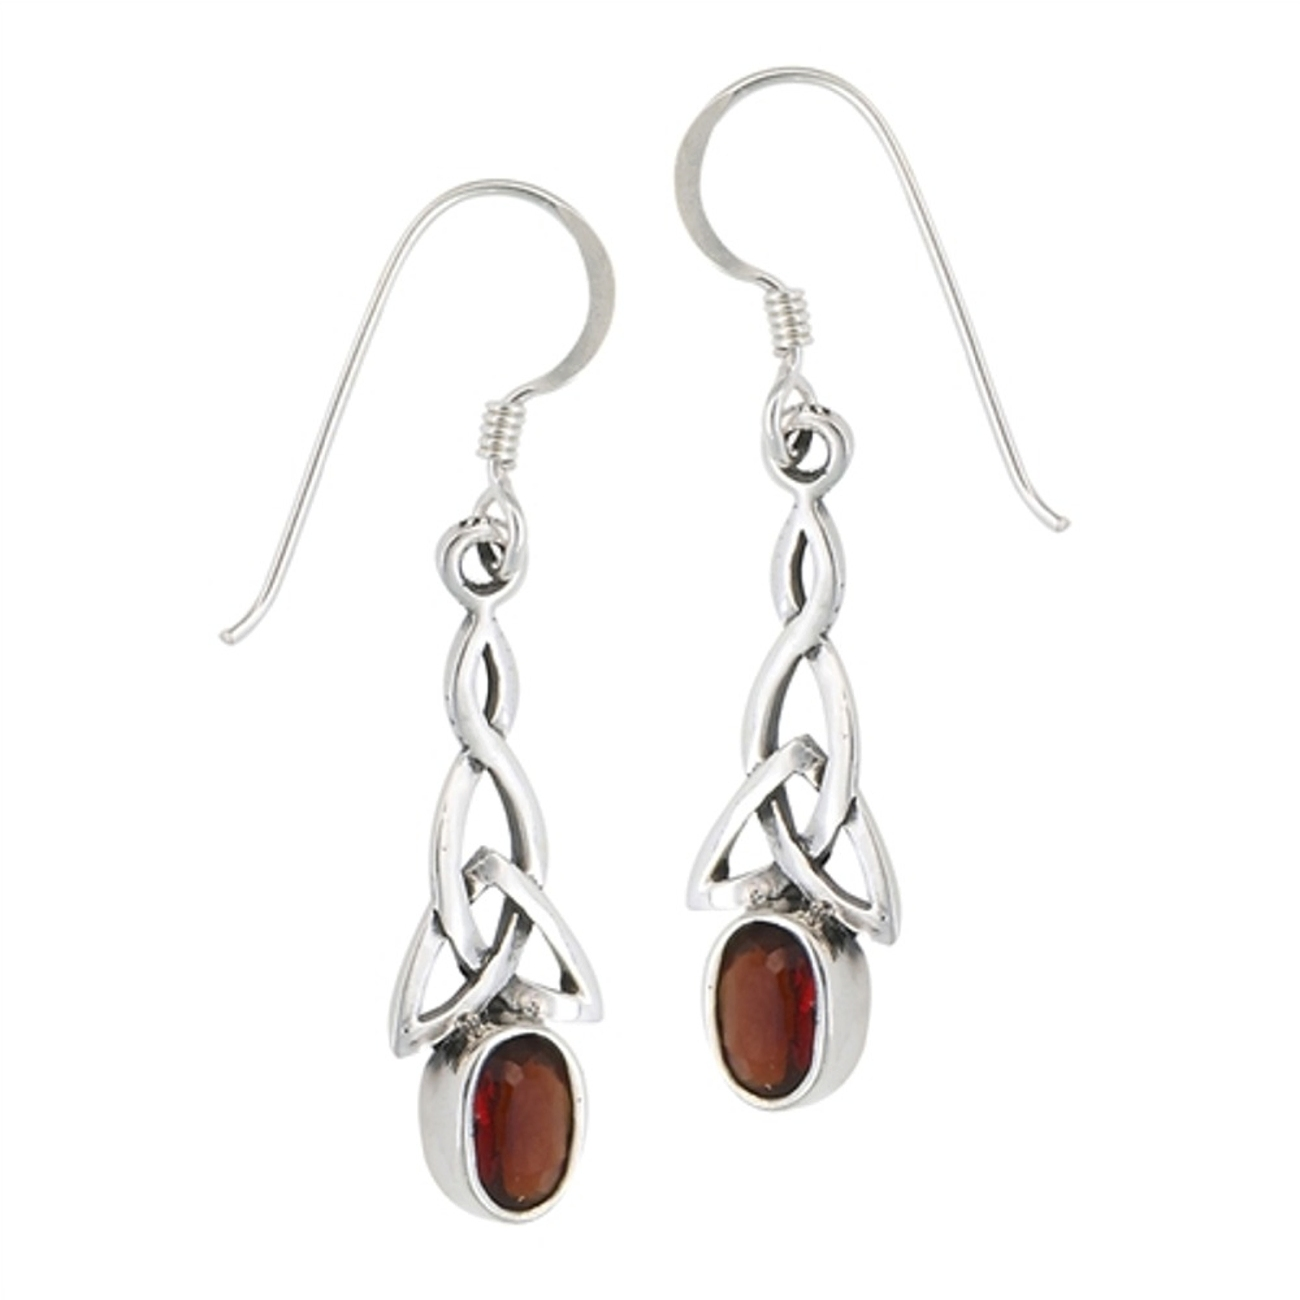 Ea 3143 Celtic Imitation Garnet Earrings